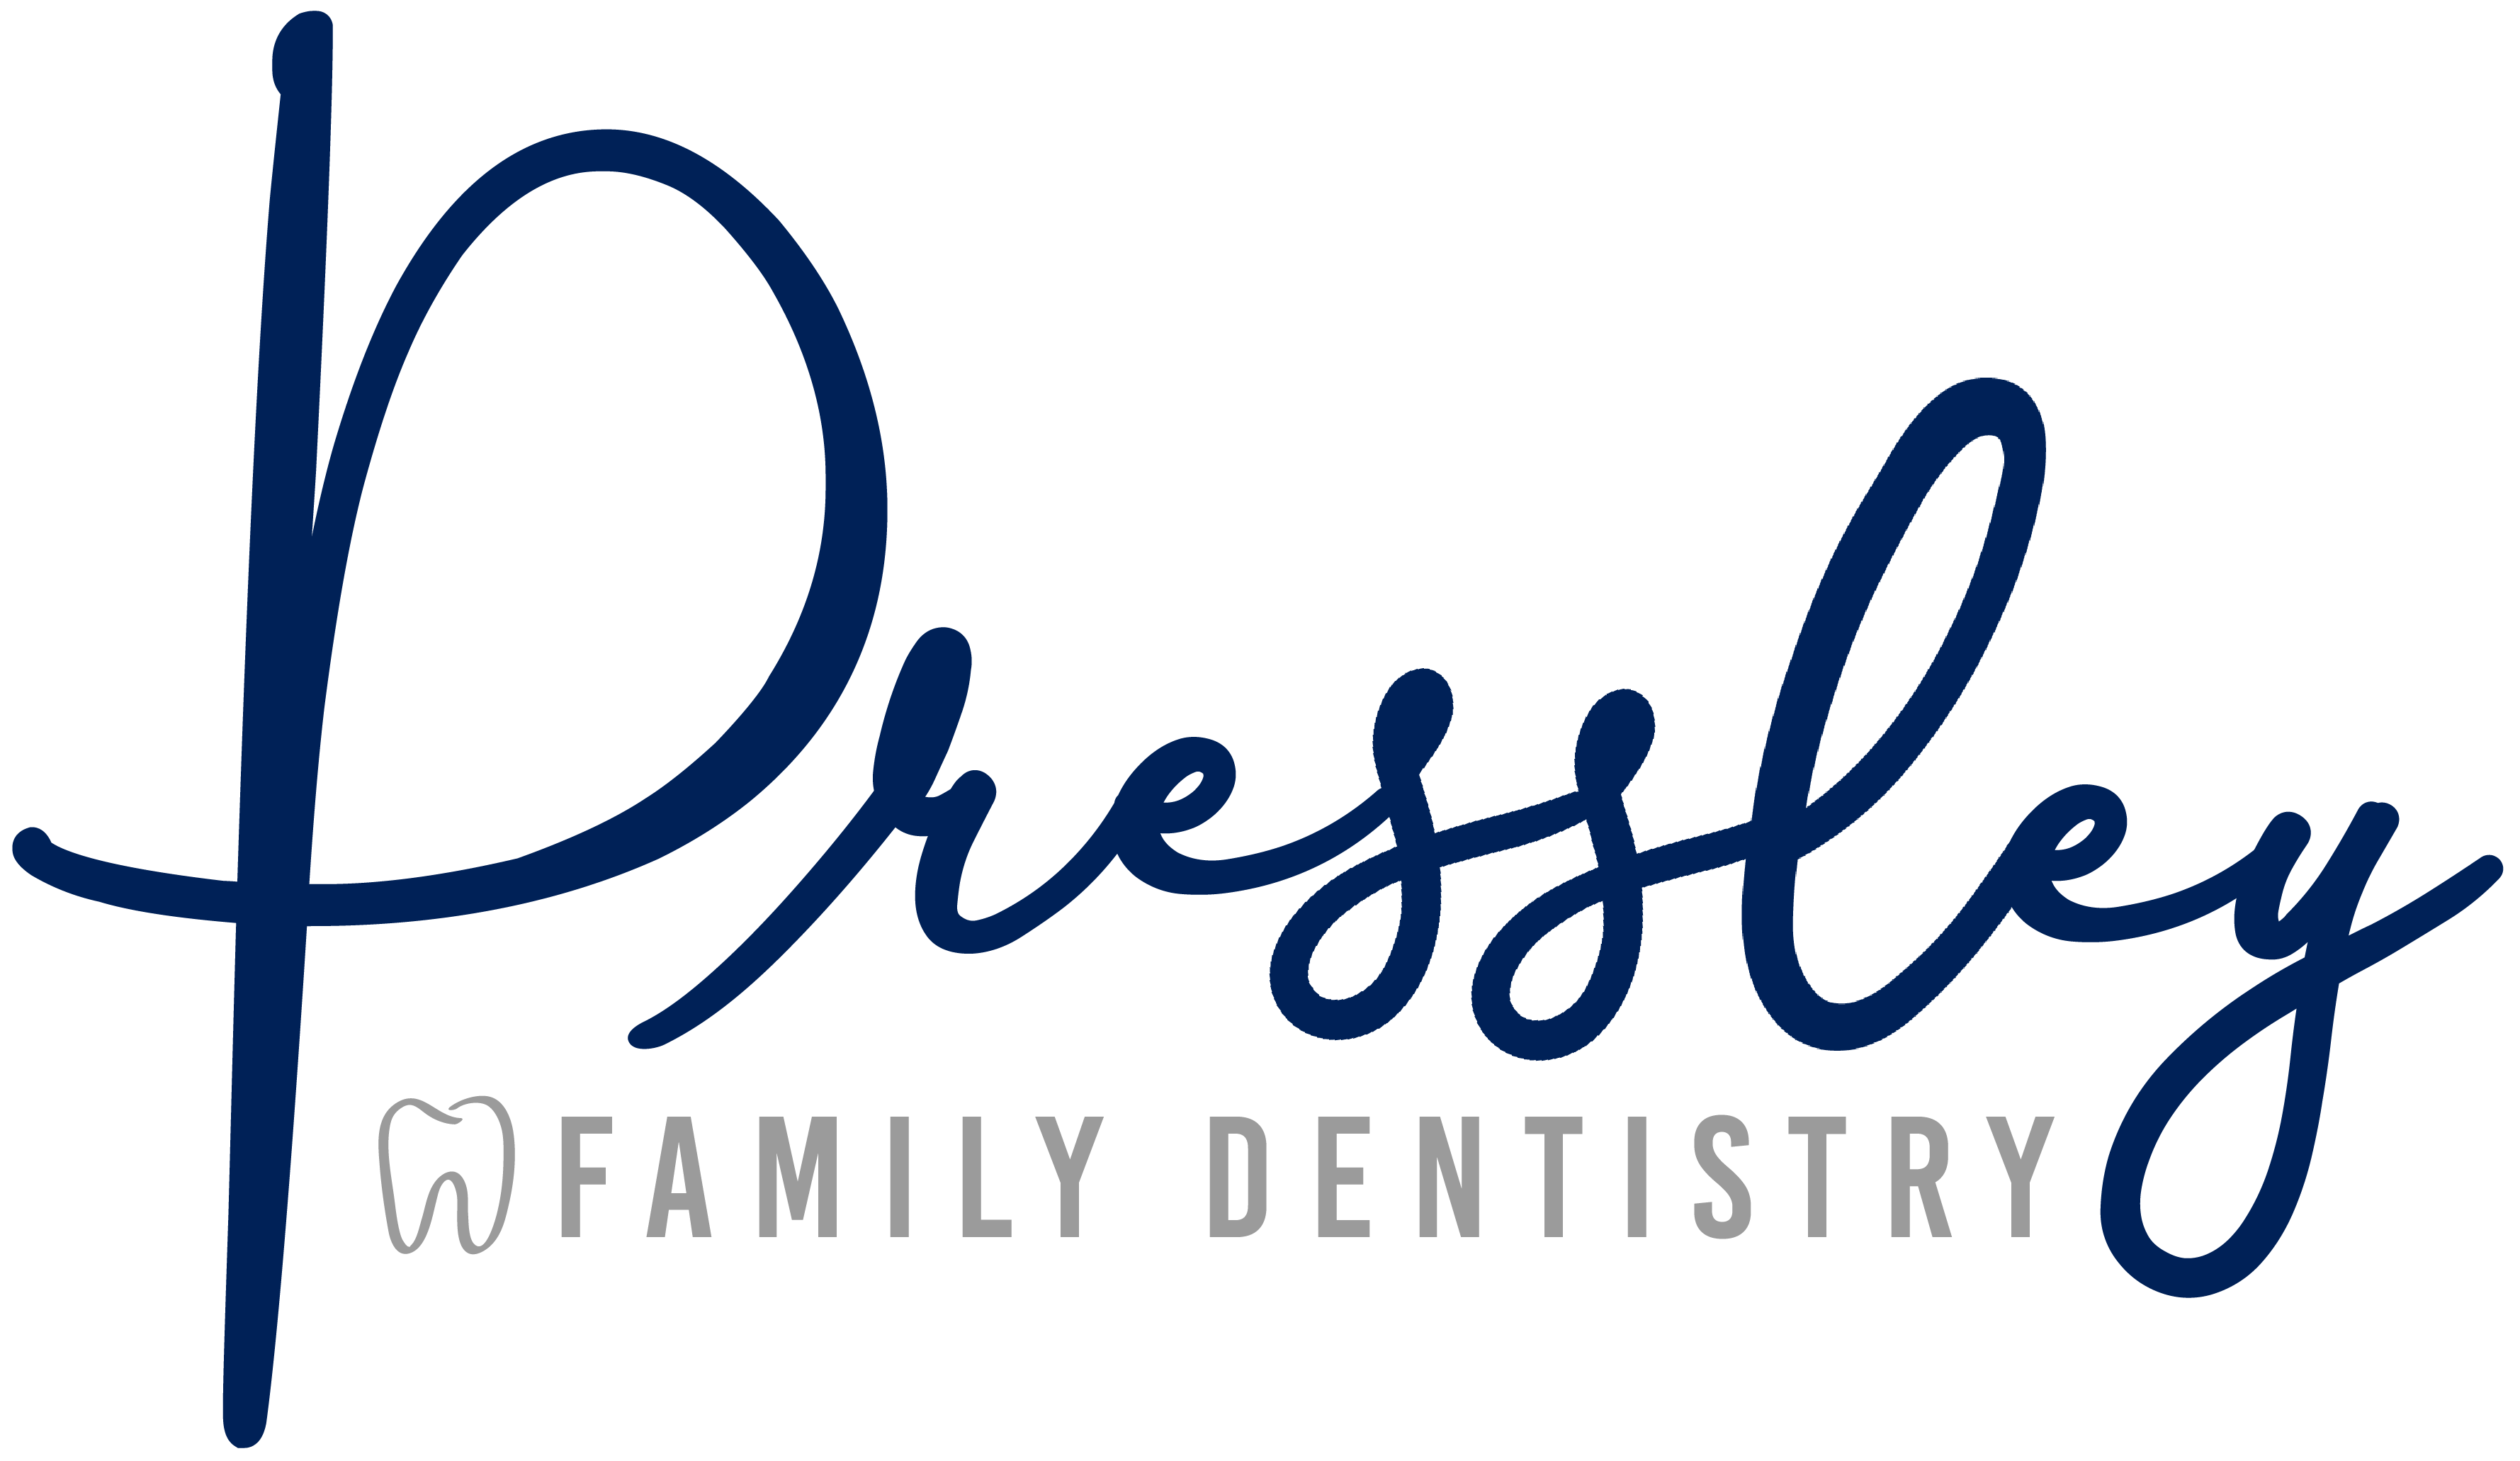 Pressley Family Dentistry Logo